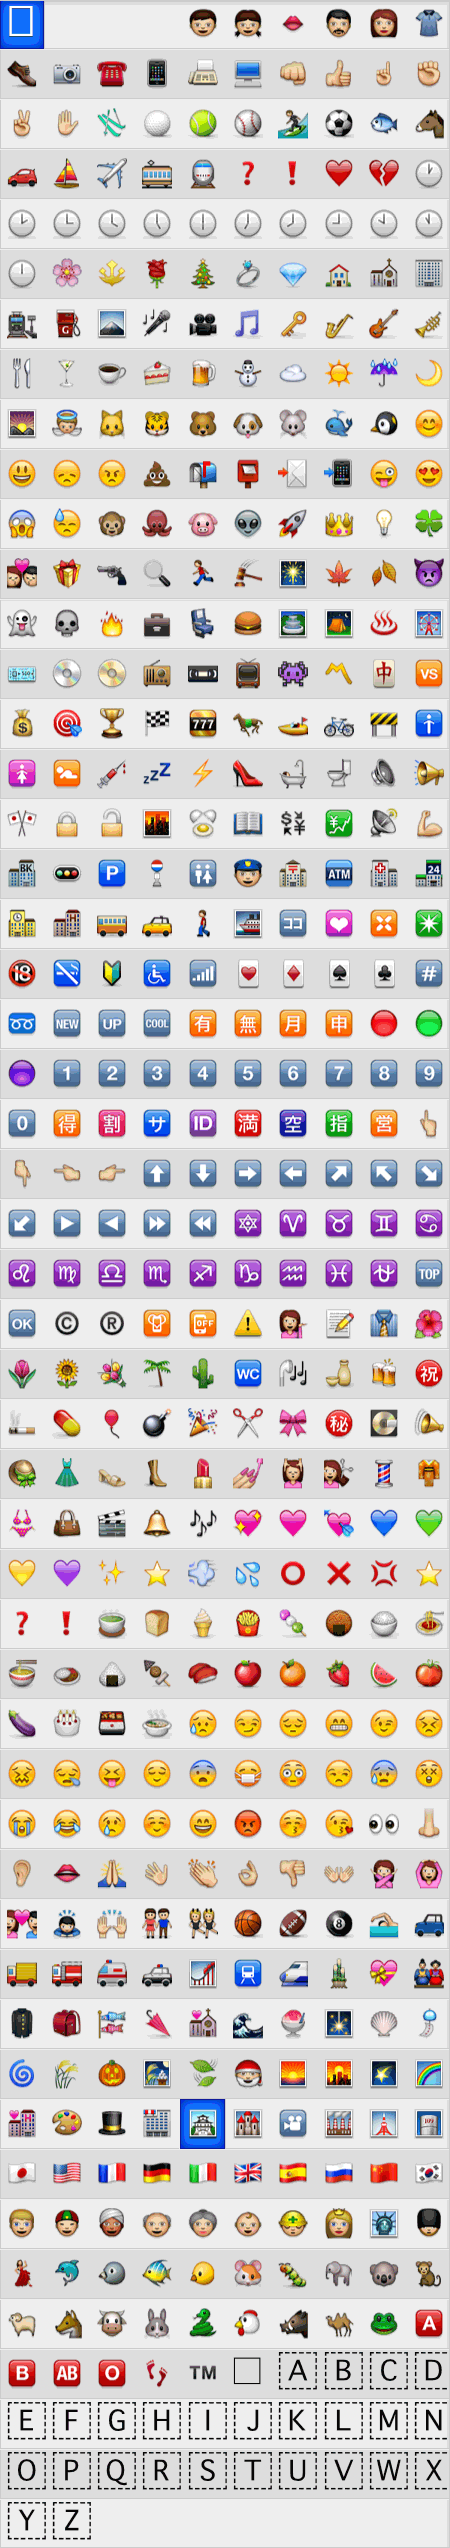 The character set of the Apple Emoji typeface